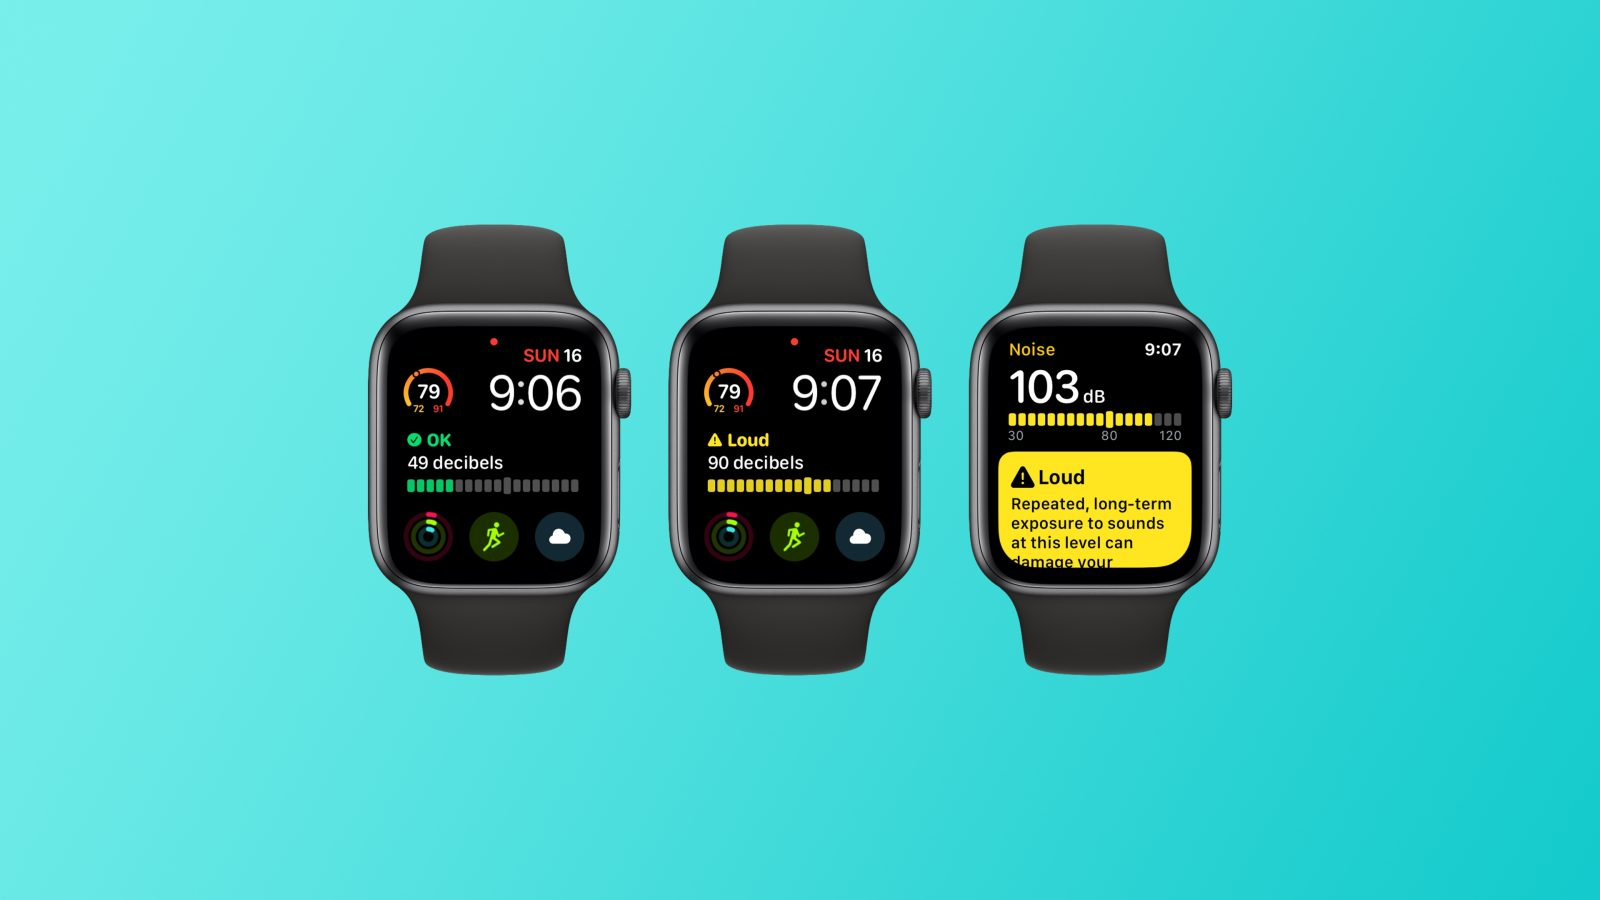 Dad explains how the Apple Watch Noise app changed the life of his son with autism - 9to5Mac